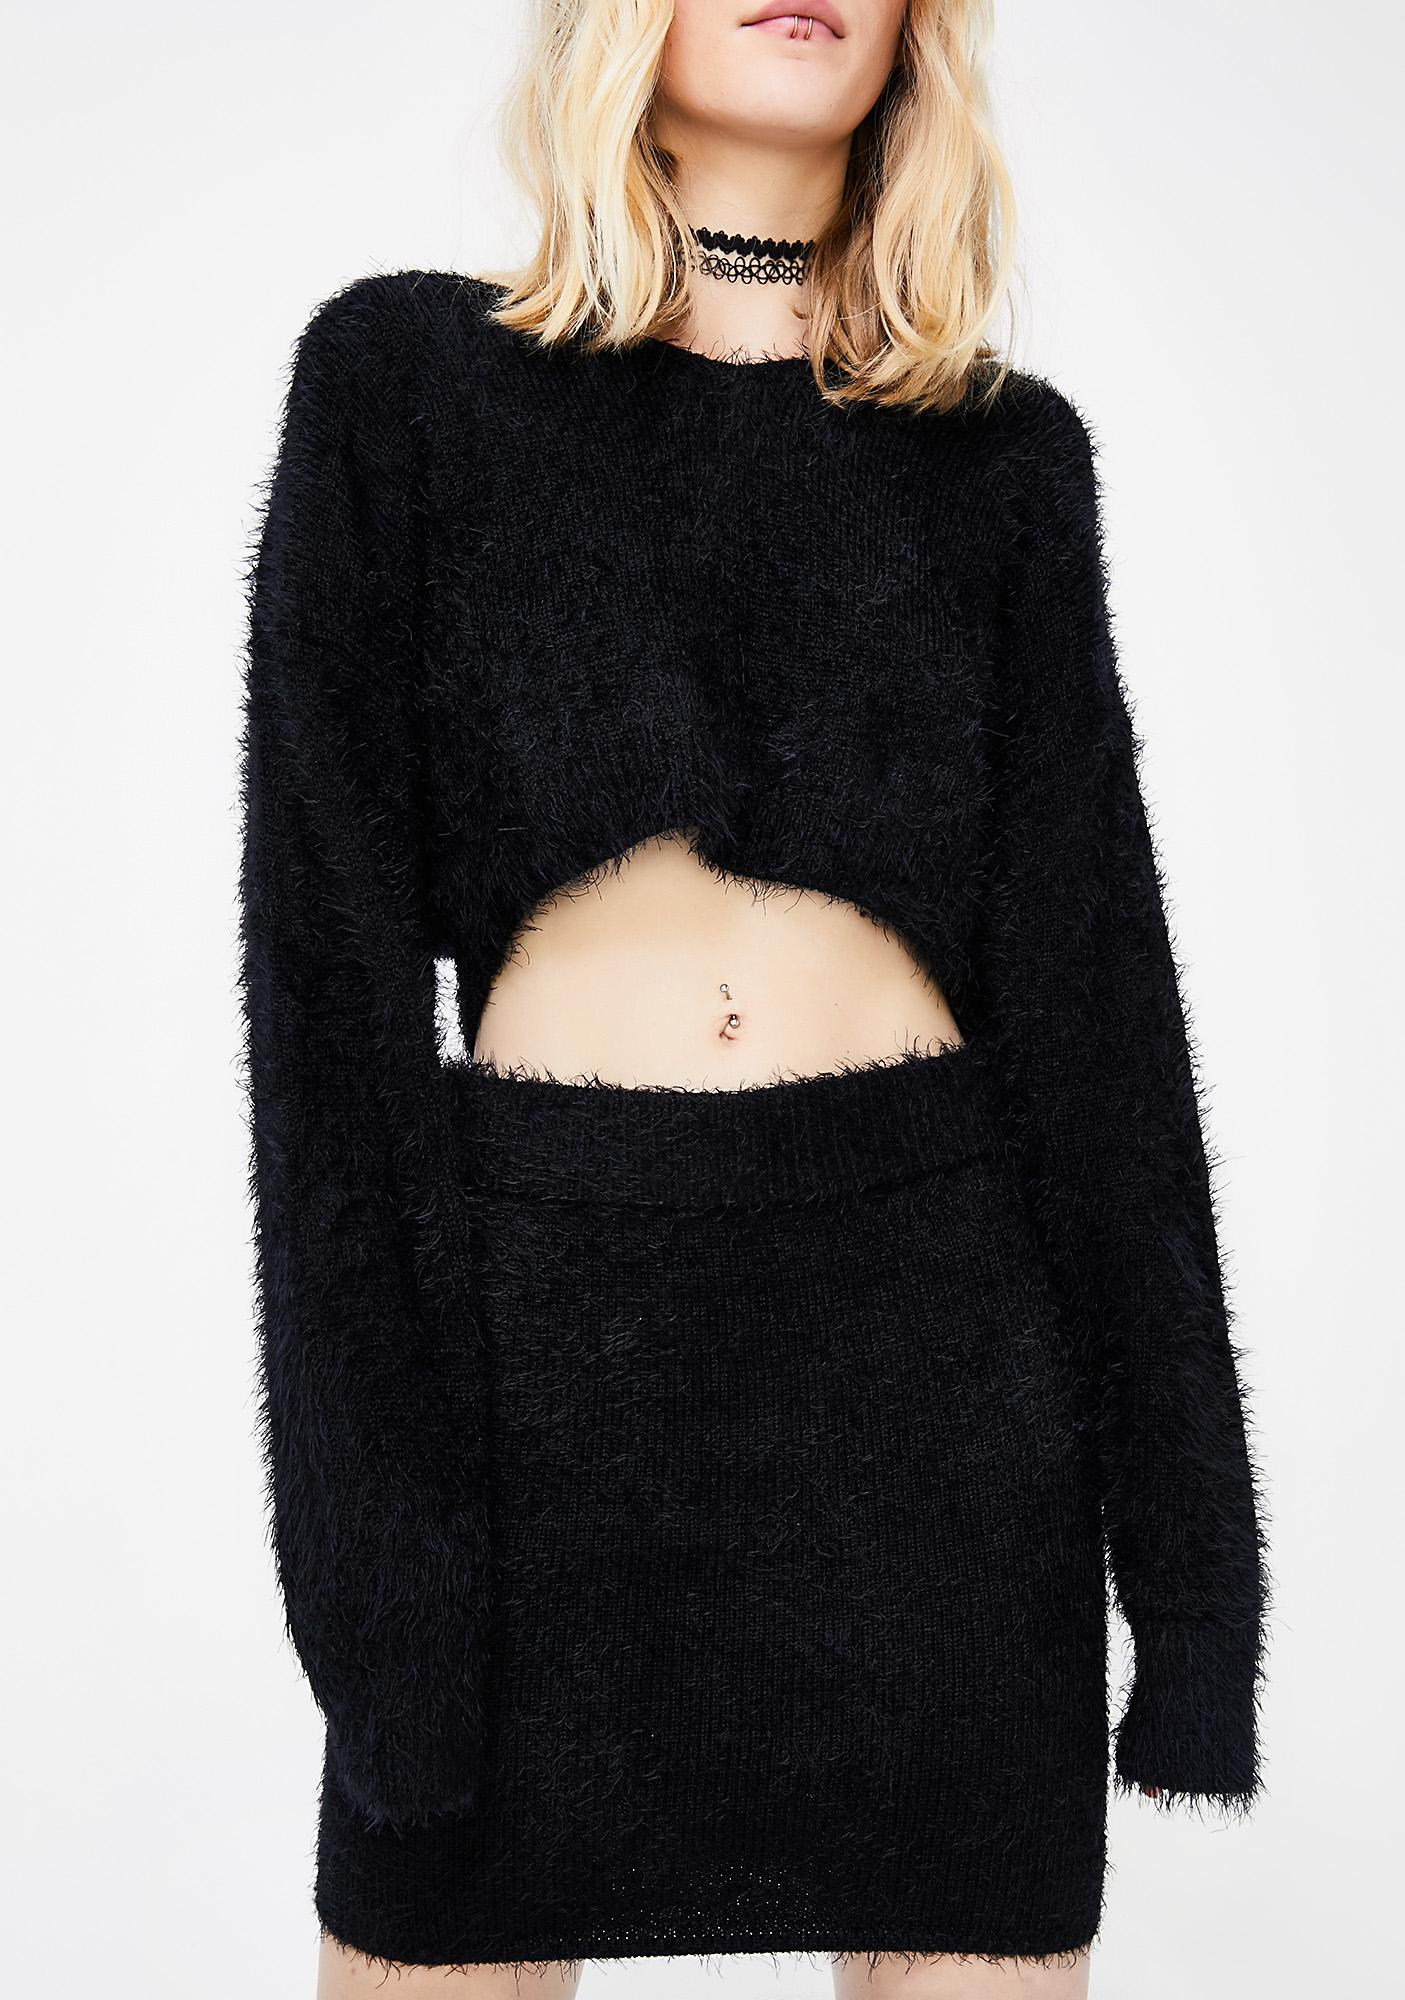 Black Fuzzy Sweater Skirt Set | Dolls Kill